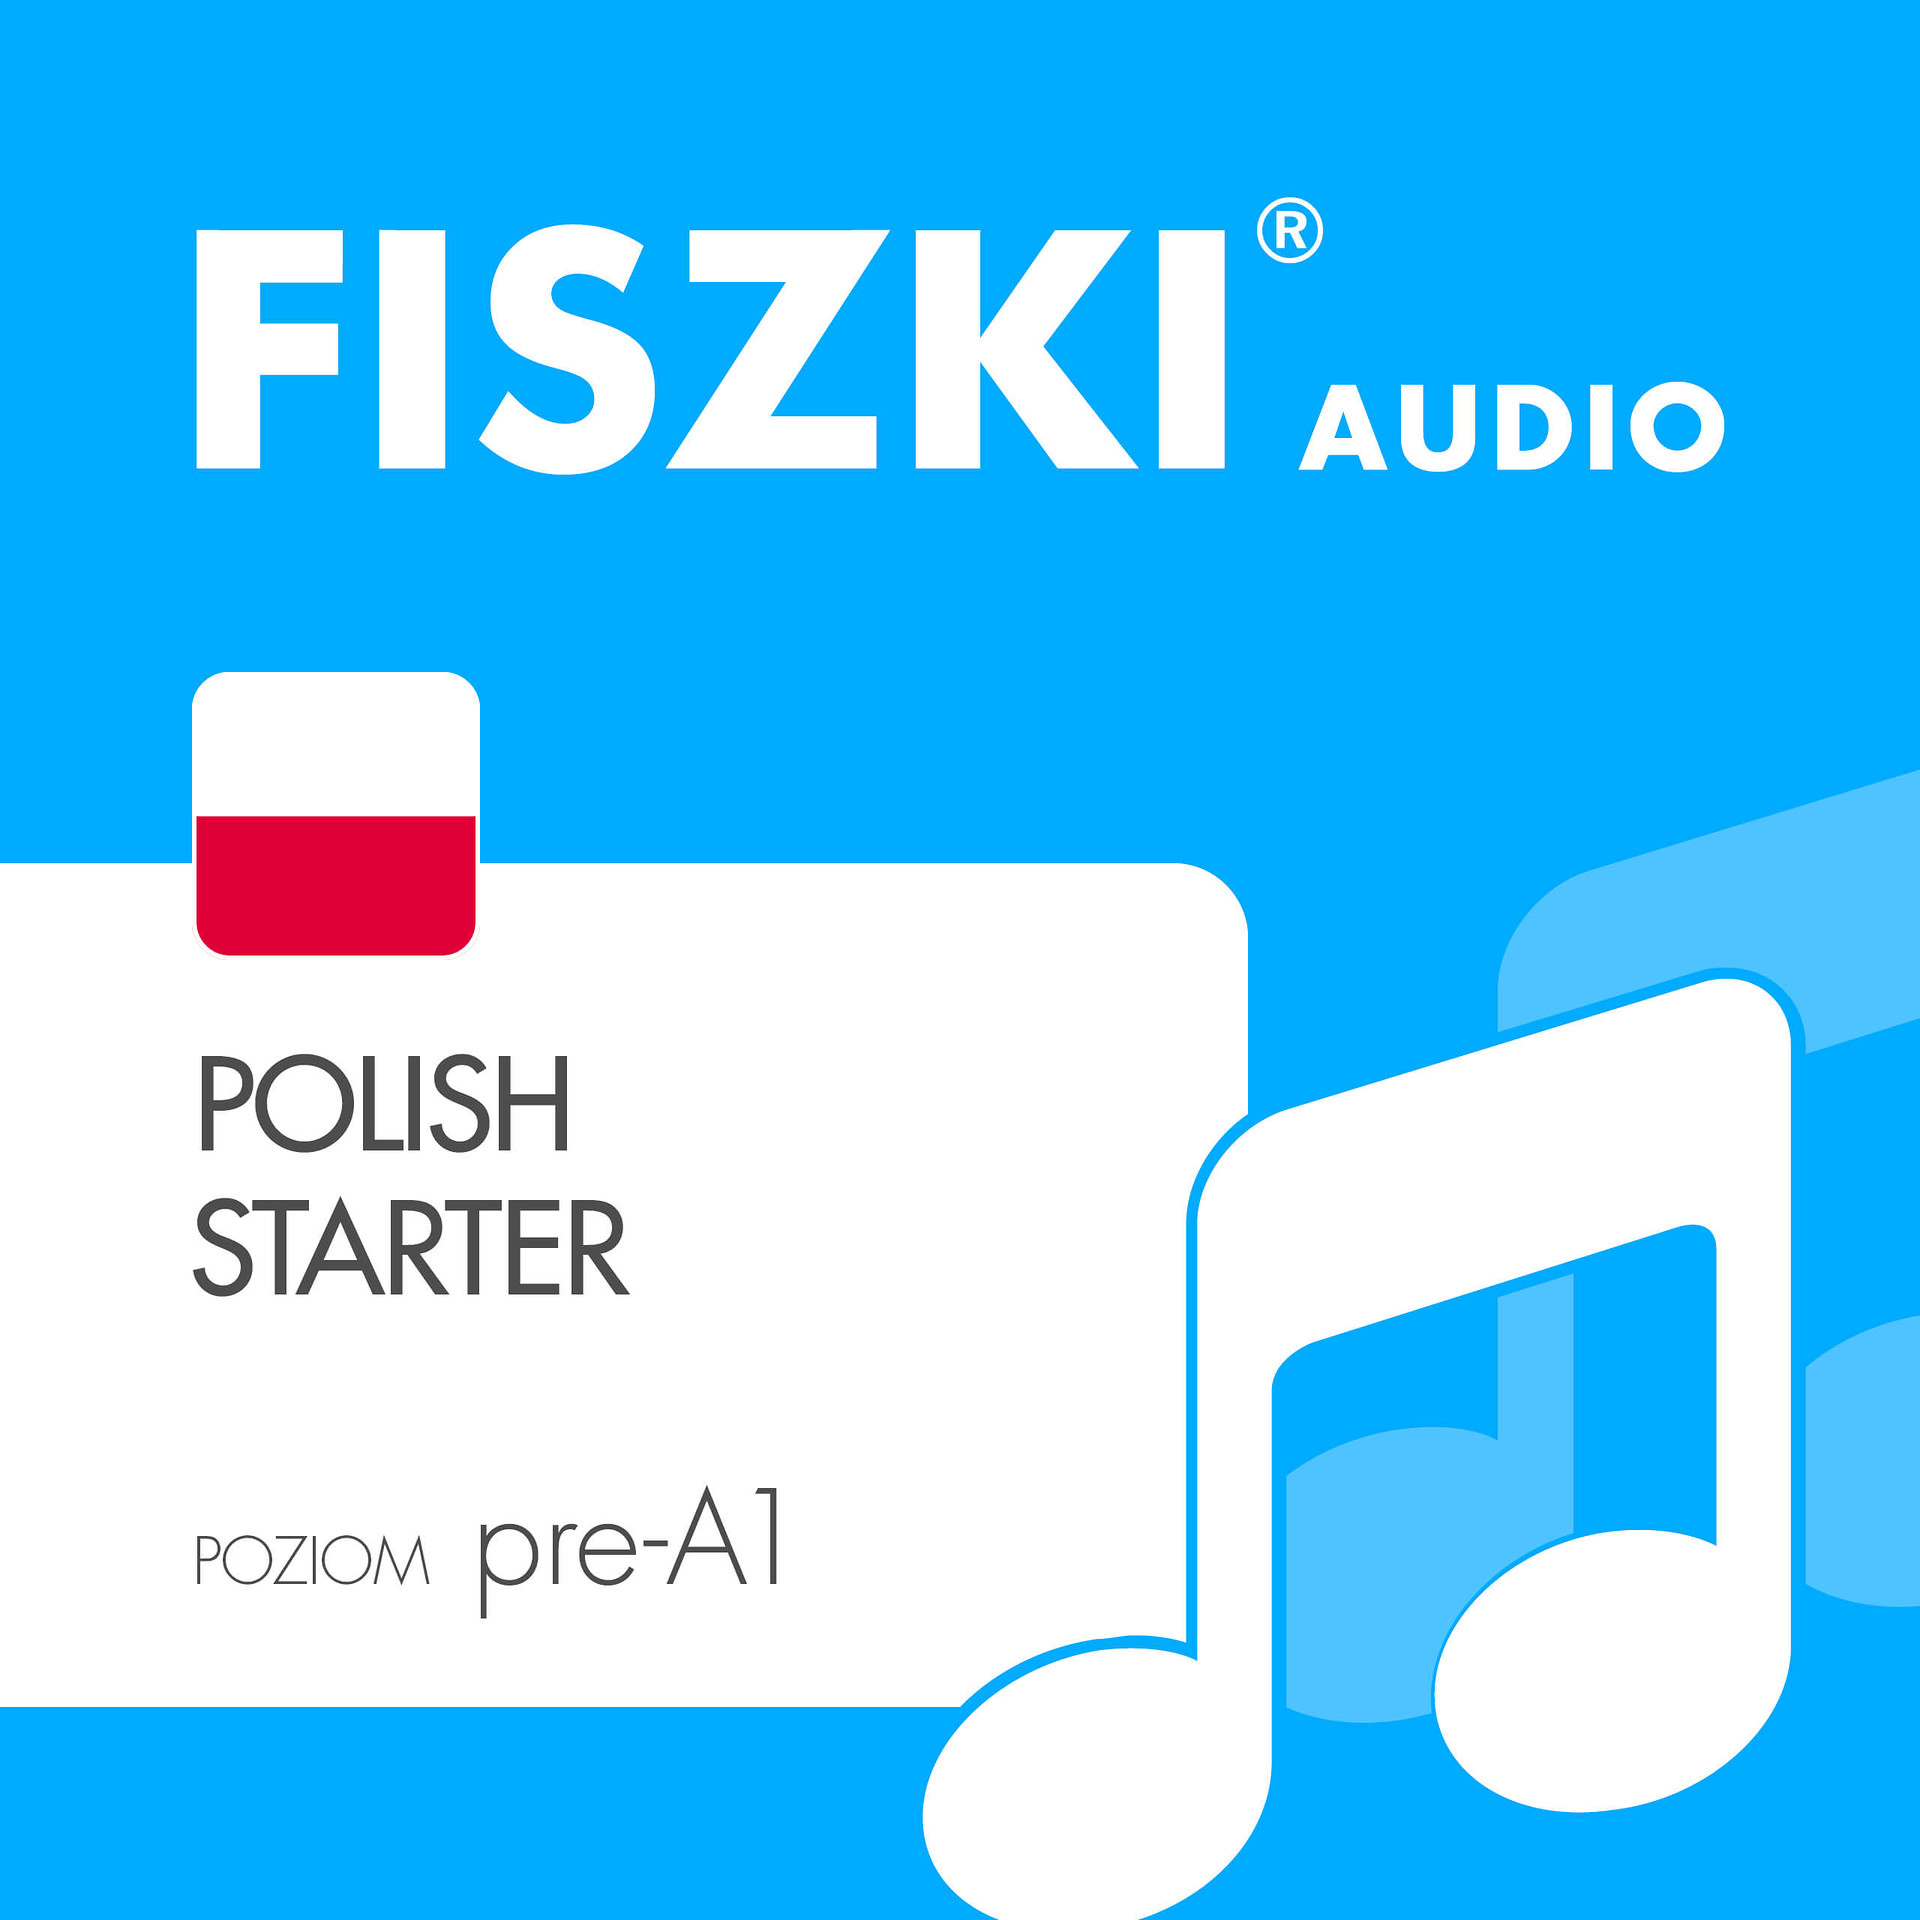 Fiszki Polish - Mp3 Files - Starter - Effective Method Of Learning Polish Quickly And Easily